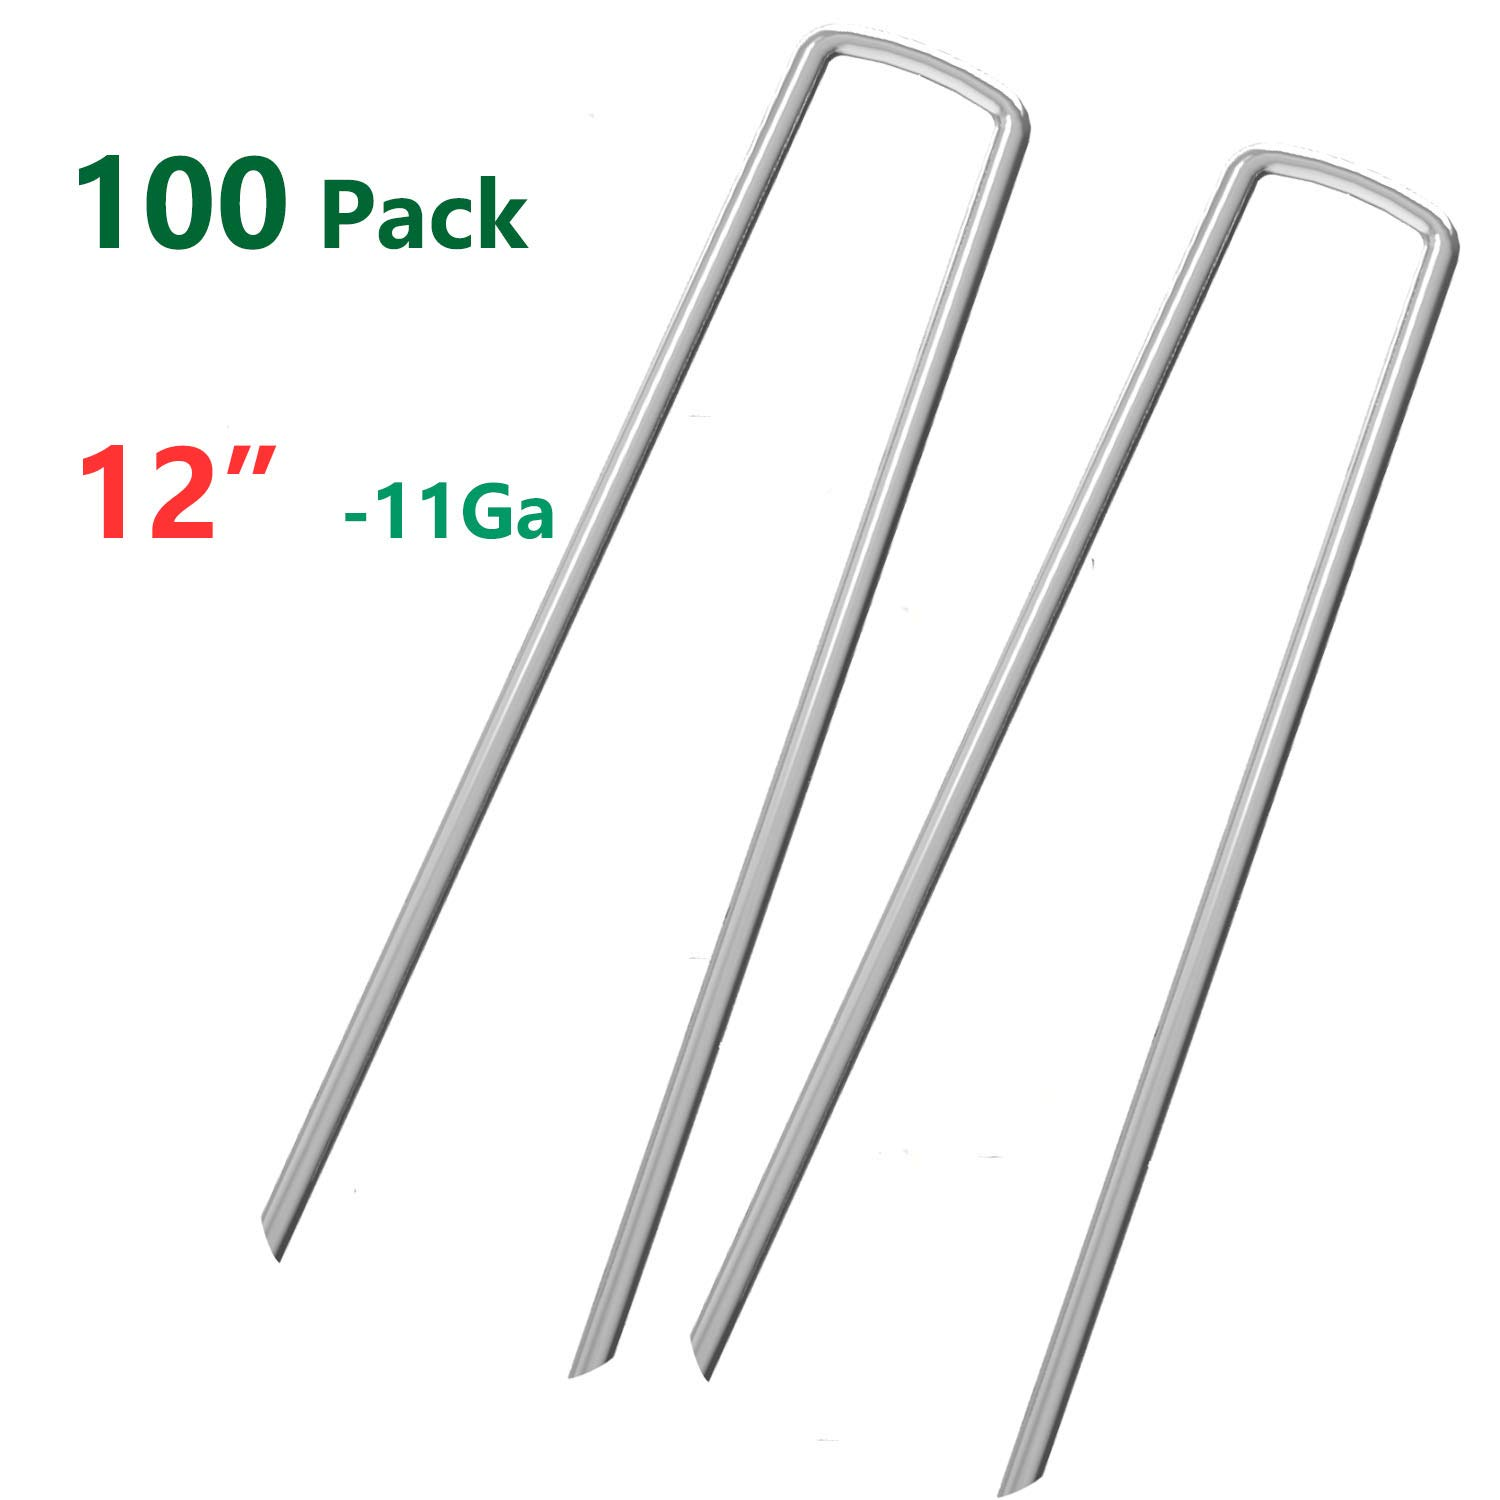 OuYi 100 Fence Anchors 12 Inch Garden Stakes/Spikes/Pins/Pegs 11 Gauge Galvanized Steel, Anchoring Landscaping, Weed Barrier Fabric, Ground Cover 100 Pack